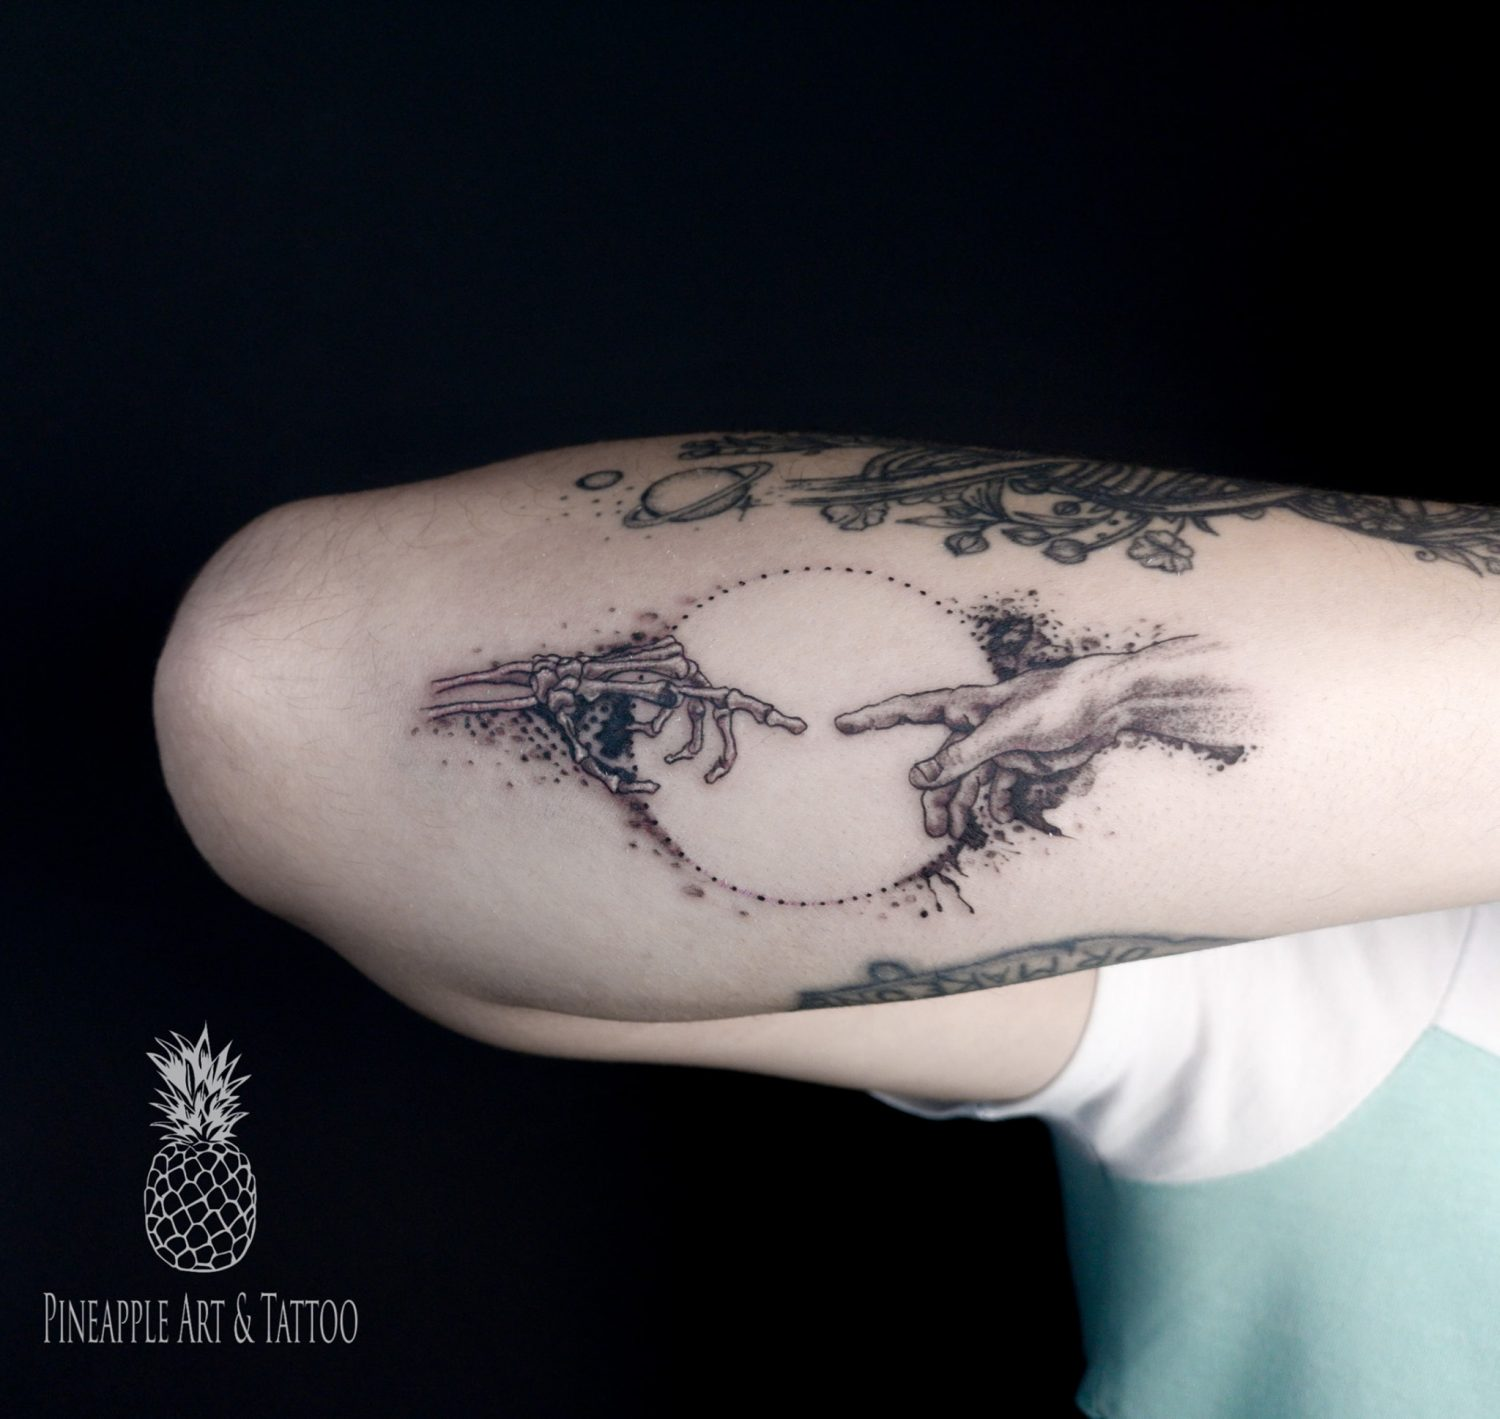 The touch tattoo by Pineapple tattoo Mariobr Slovenia